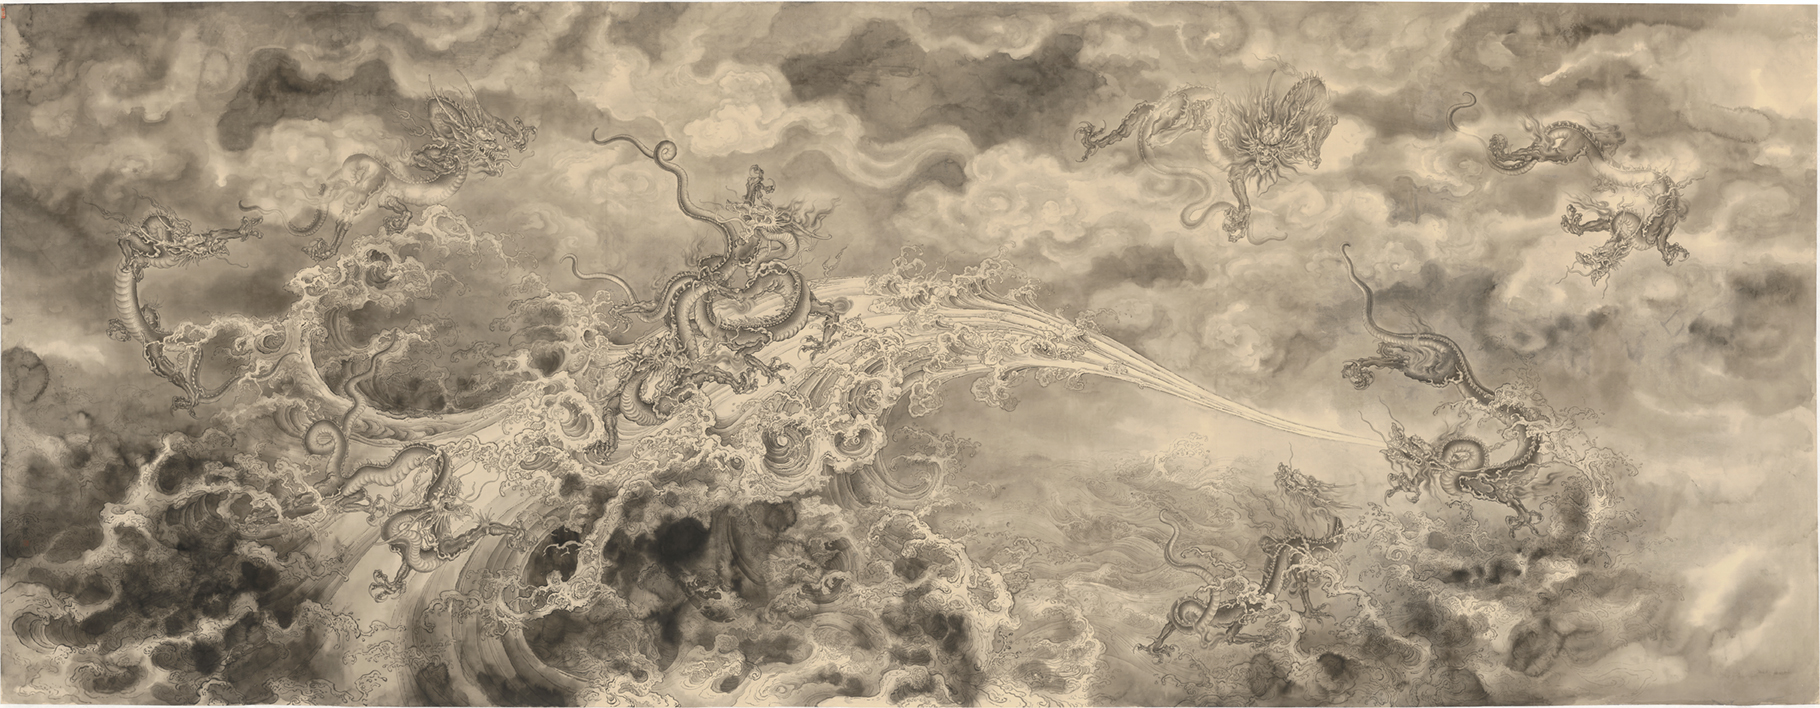 Ren Zhong - Nine dragons and sea, 2018